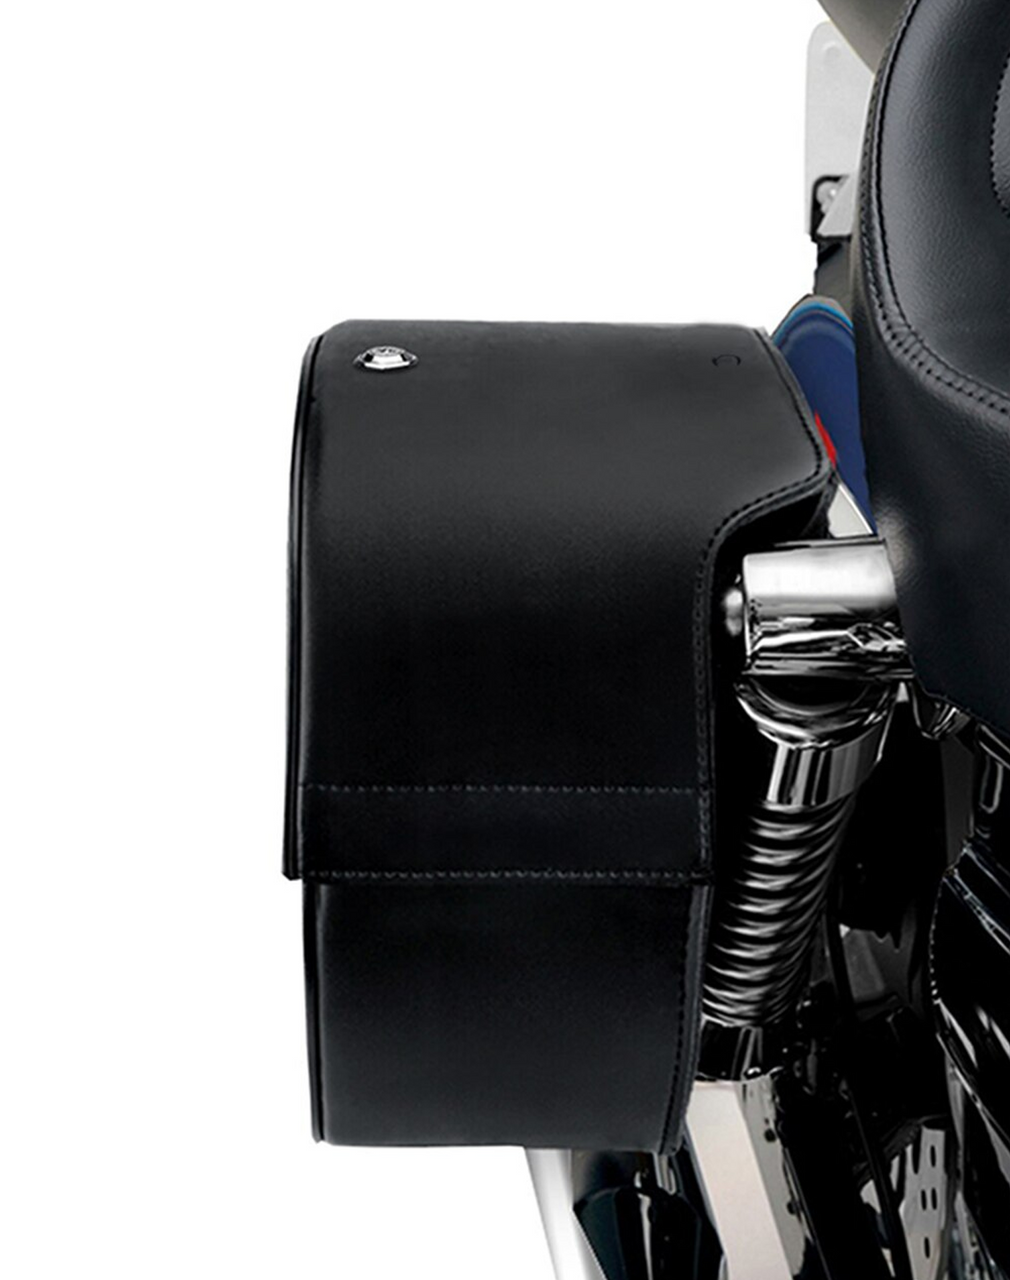 VikingBags Battlecry Medium Double Strap Shock Cutout Leather Motorcycle Saddlebags For Harley Sportster Super Low 1200T Shock cutout View